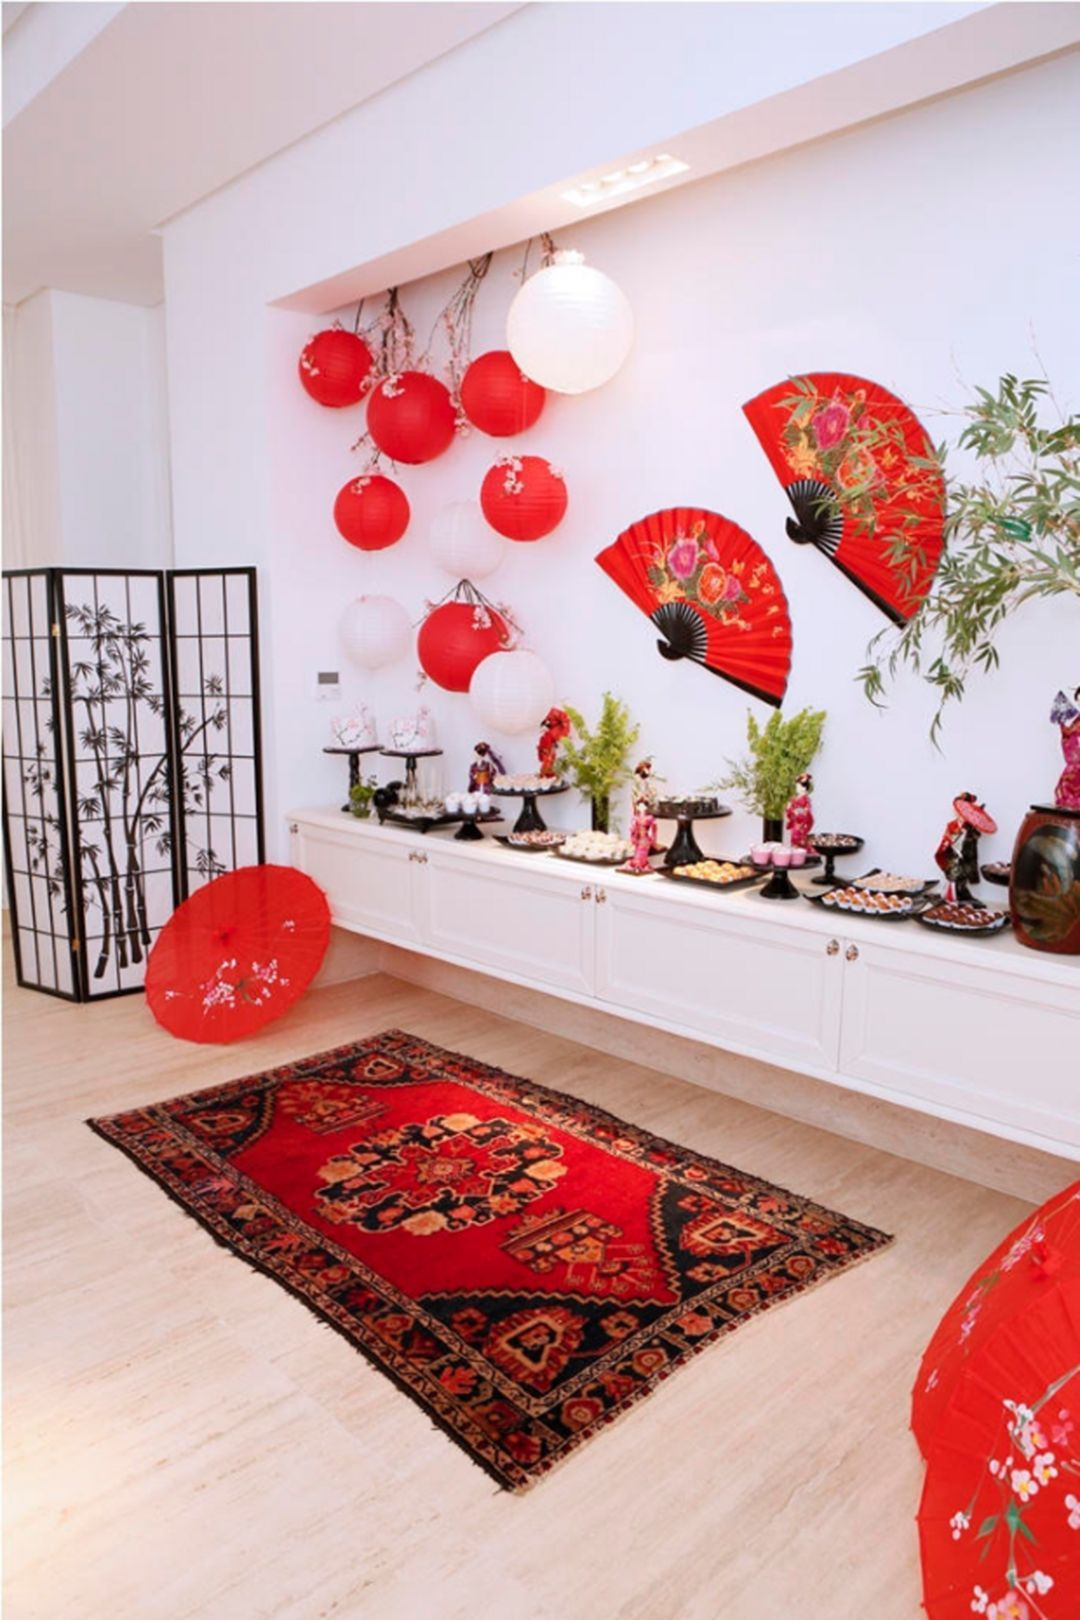 10 Best Chinese Lunarthemed Designs and Decorations for